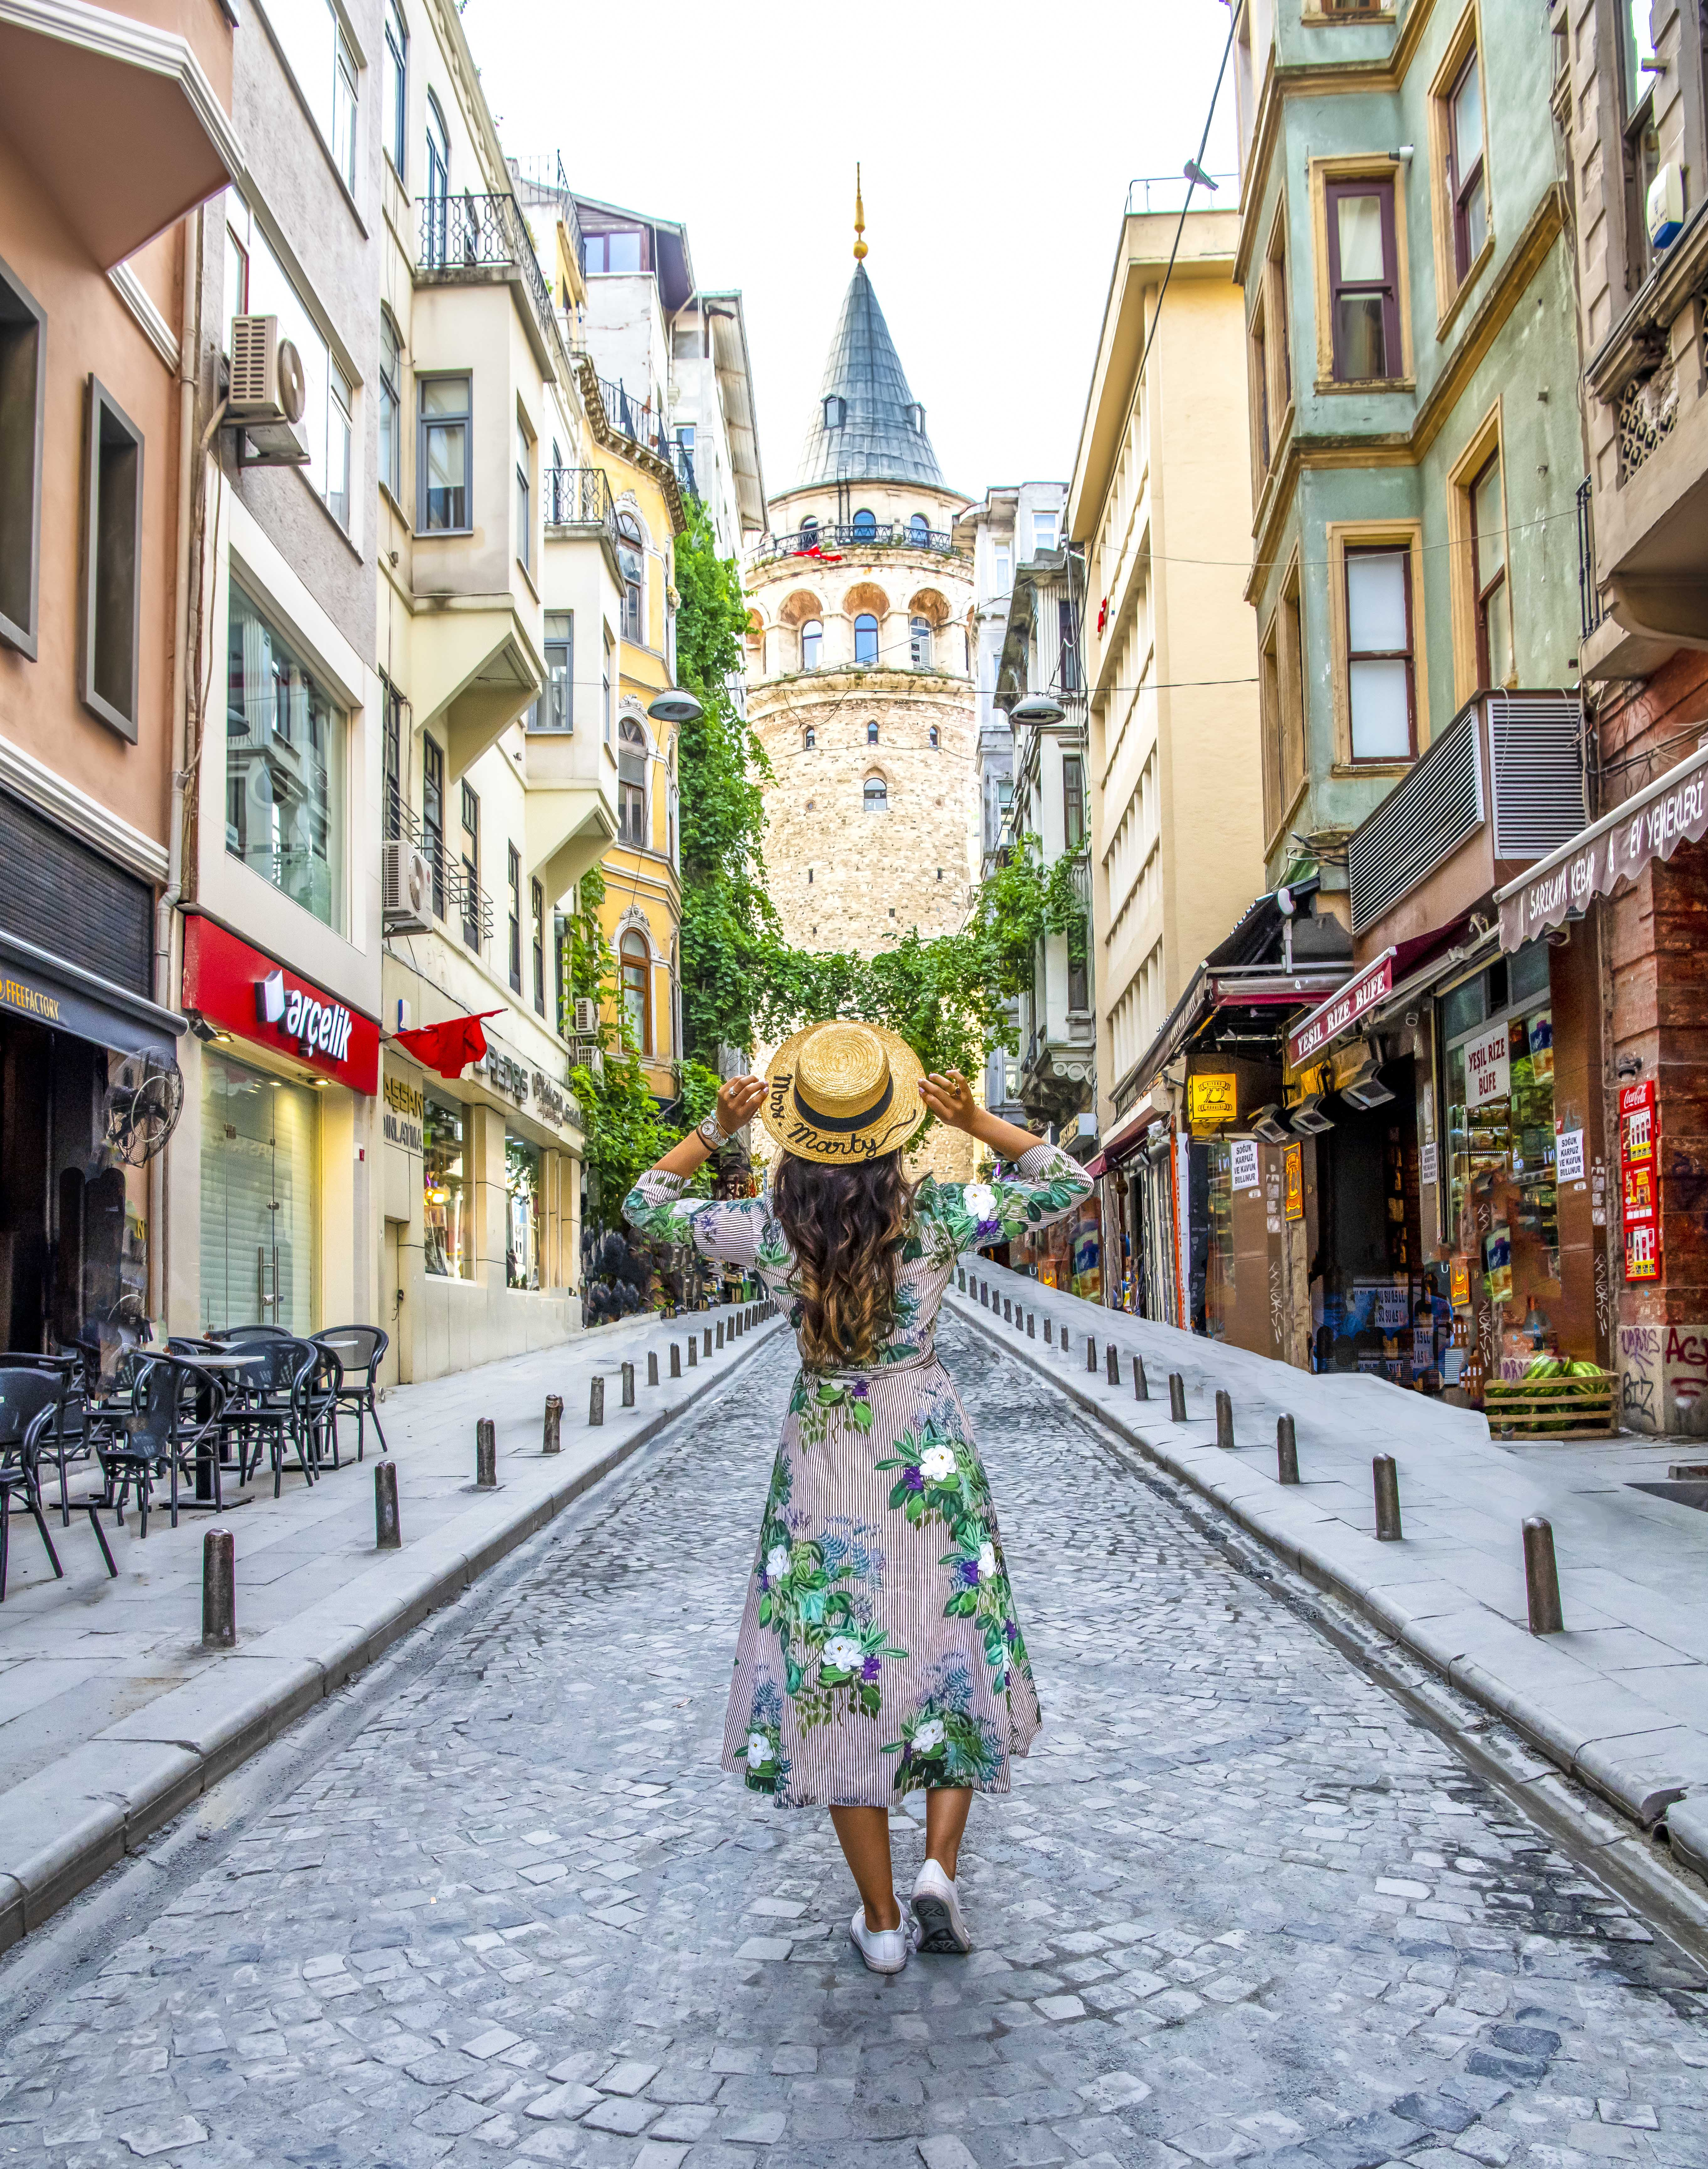 This cobbled street leads up to Galata Tower. It also looks amazing in the Winter.